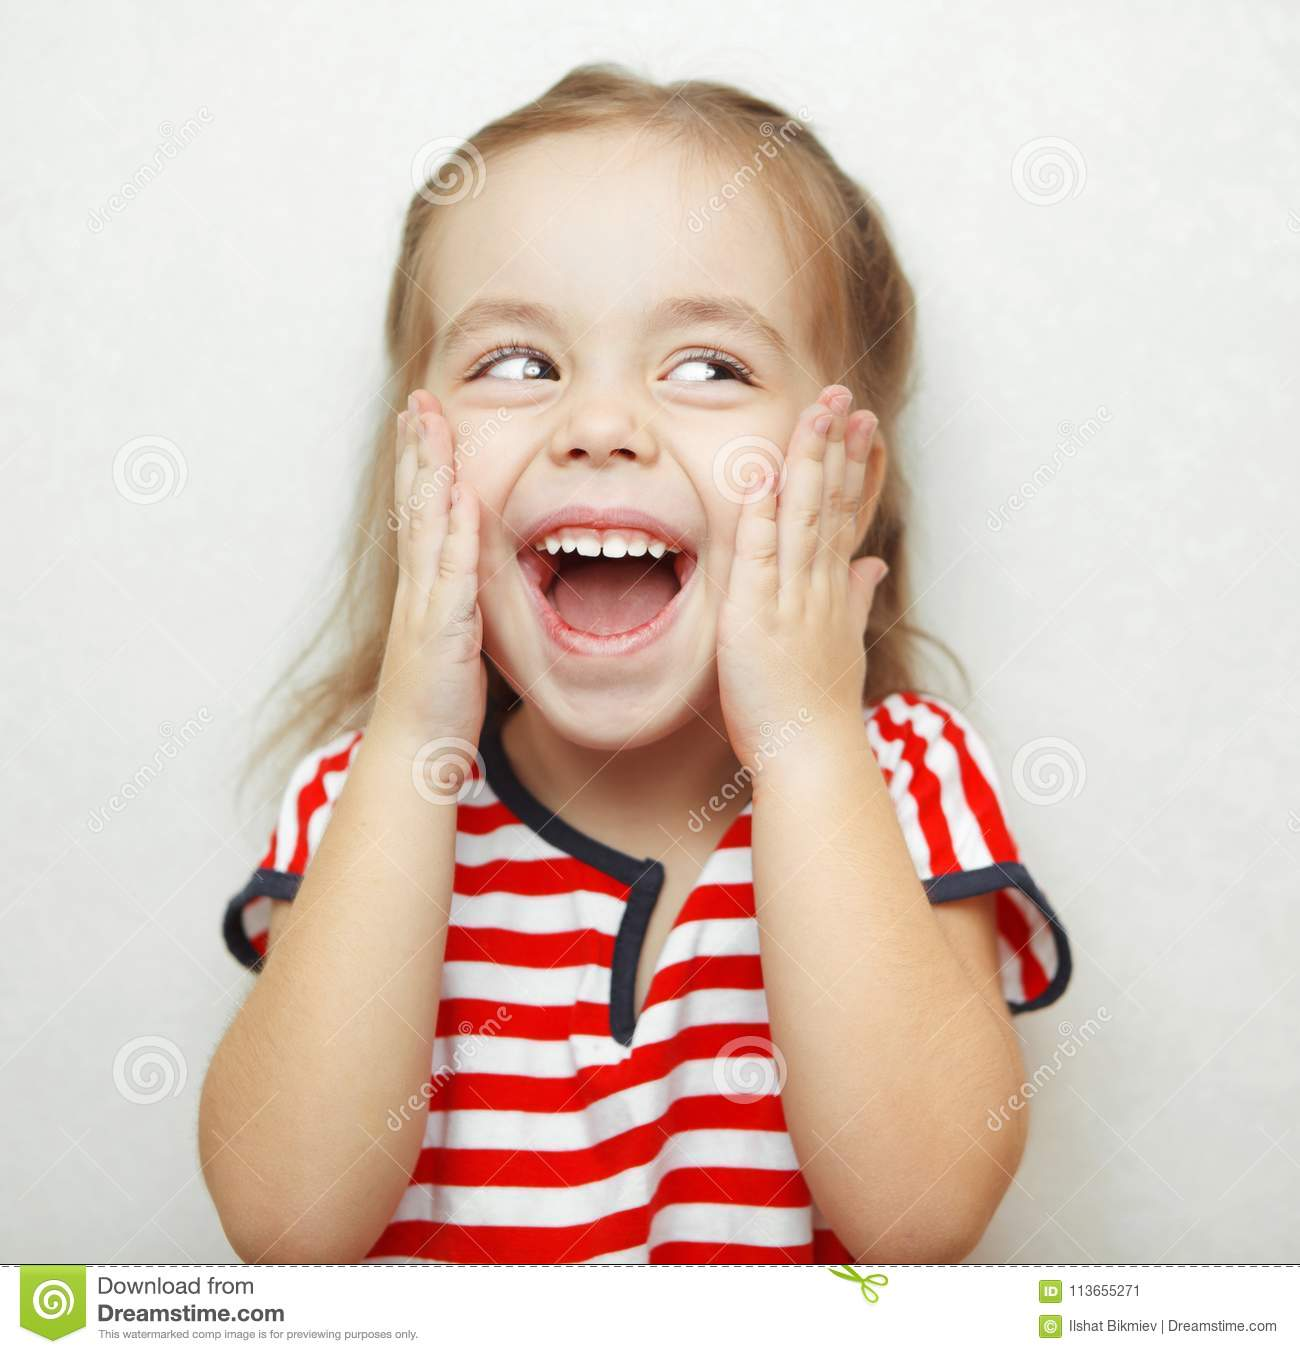 39c6a29a867f Embarrassed little girl with broad smile thouches her cheeks with hands,  looks sideways dressed in striped T-shirt and stands beside white wall.  Portrait ...